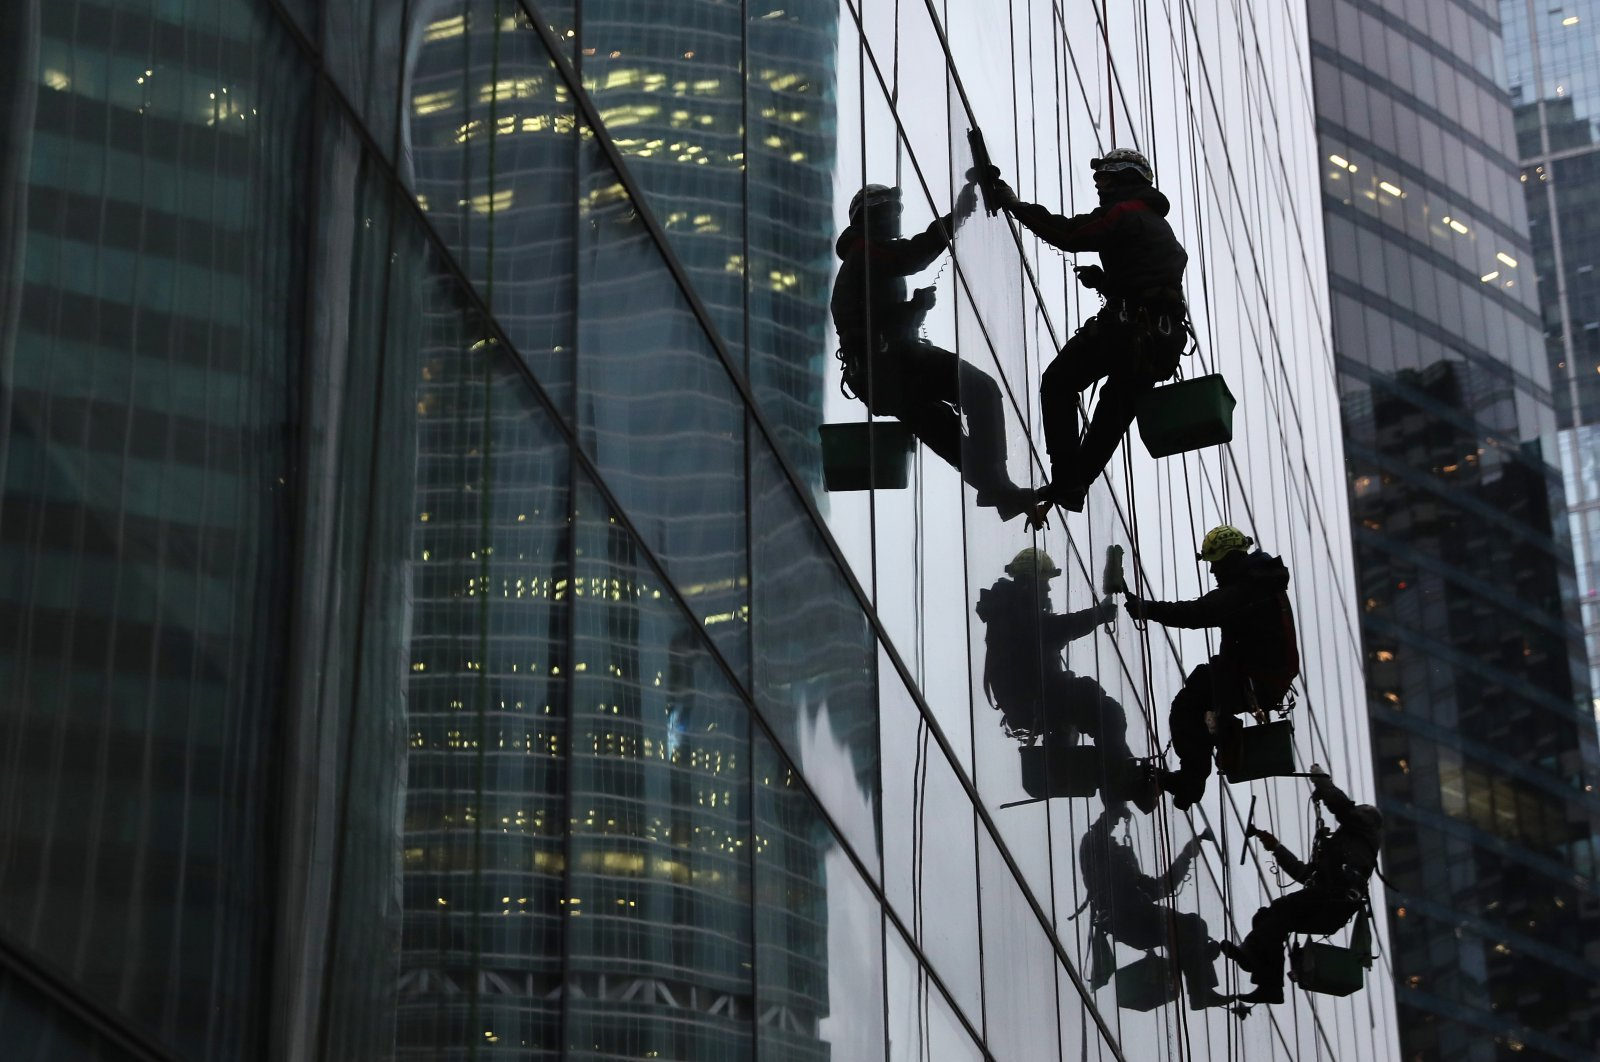 Workers clean the windows of a skyscraper at a business center during the coronavirus pandemic, Moscow, Russia, Nov. 15, 2020. (Photo by Getty Images)